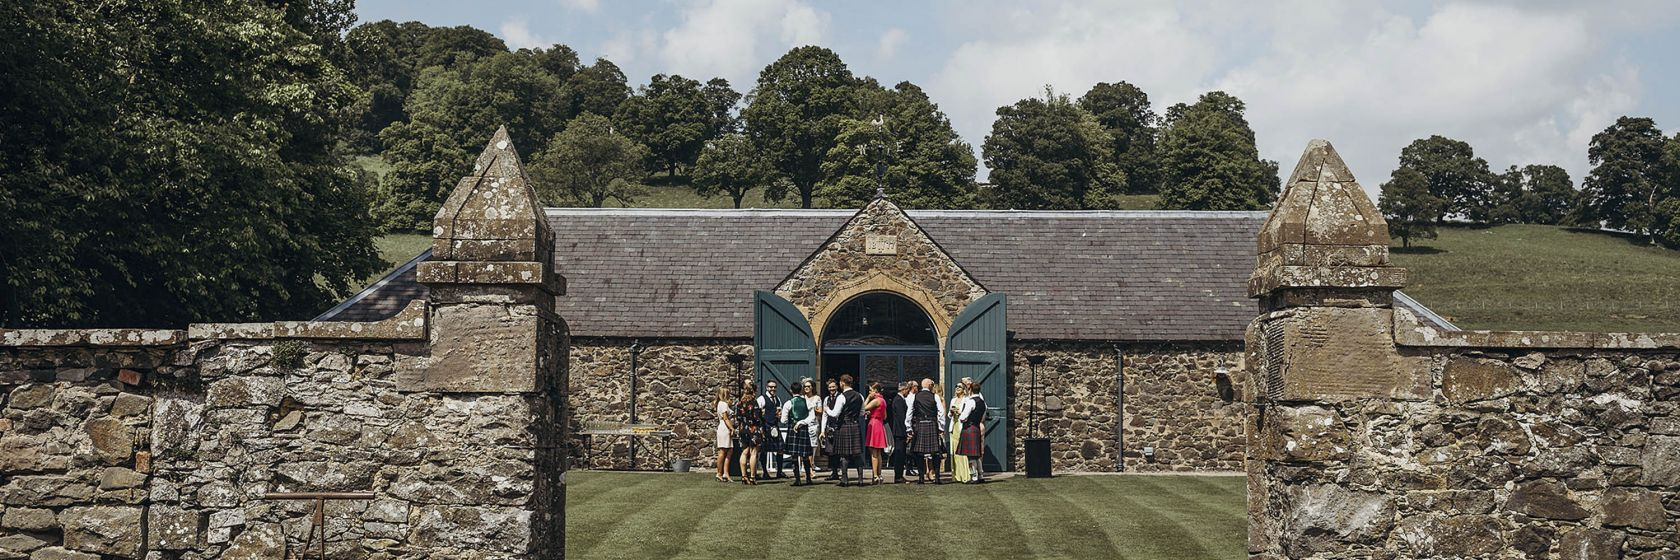 The Byre  flexible spaces set in 150 acres of the Inchyra estate